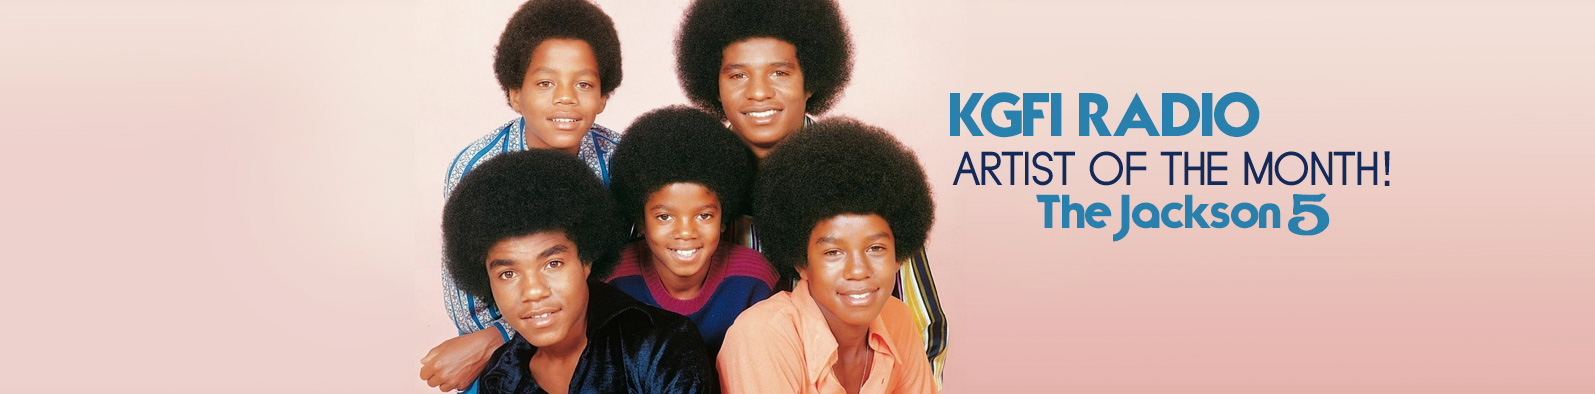 artist of the month the jackson